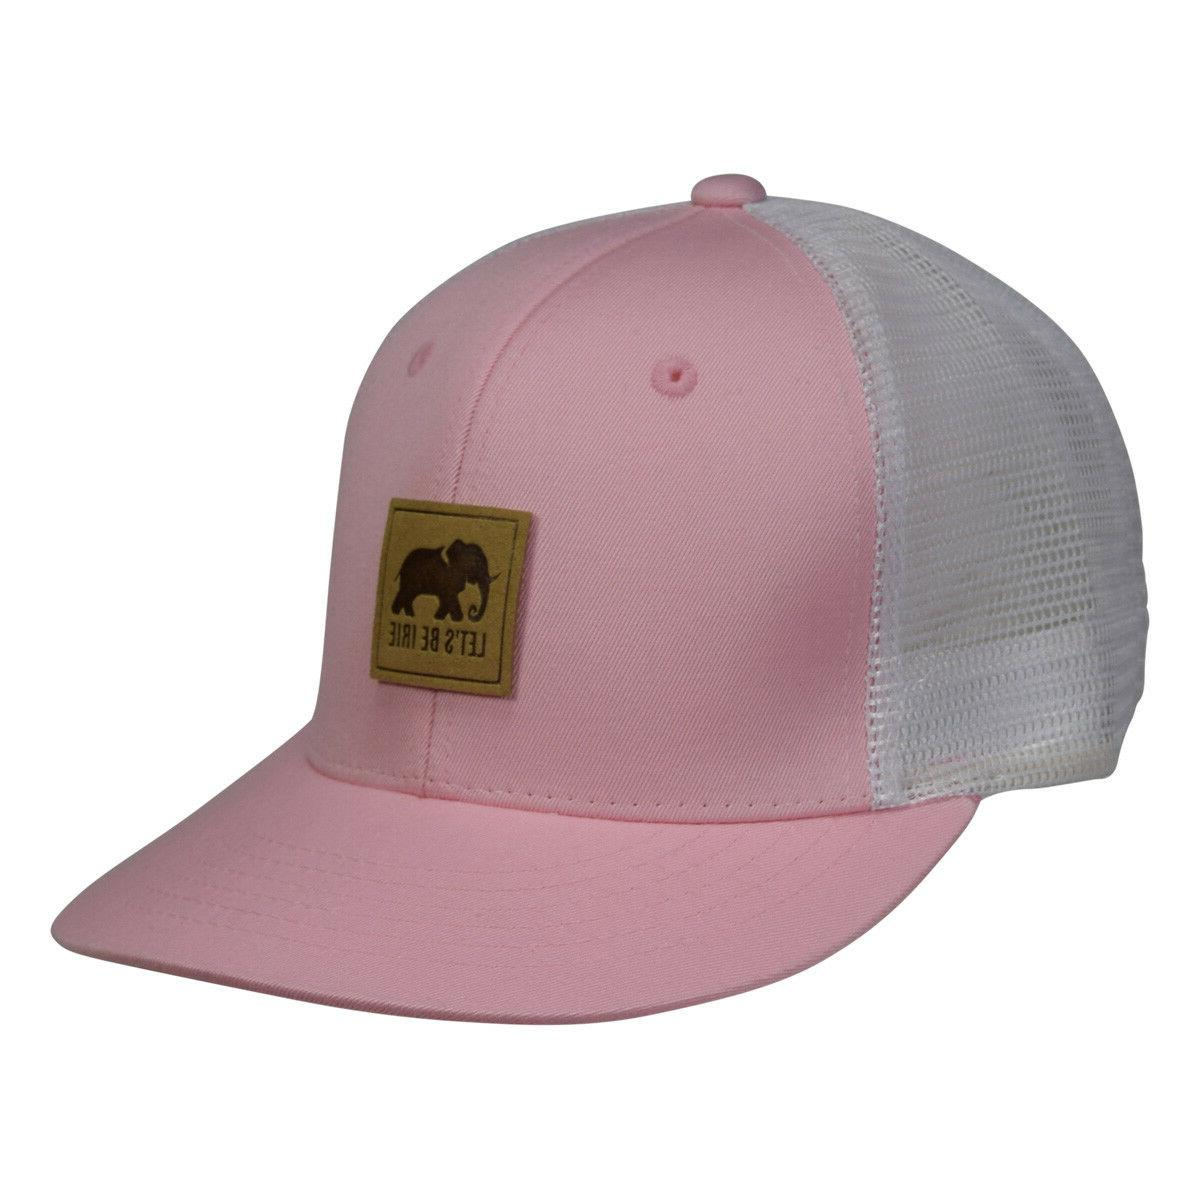 LET'S BE IRIE Elephant Trucker Hat - Pink and White Snapback